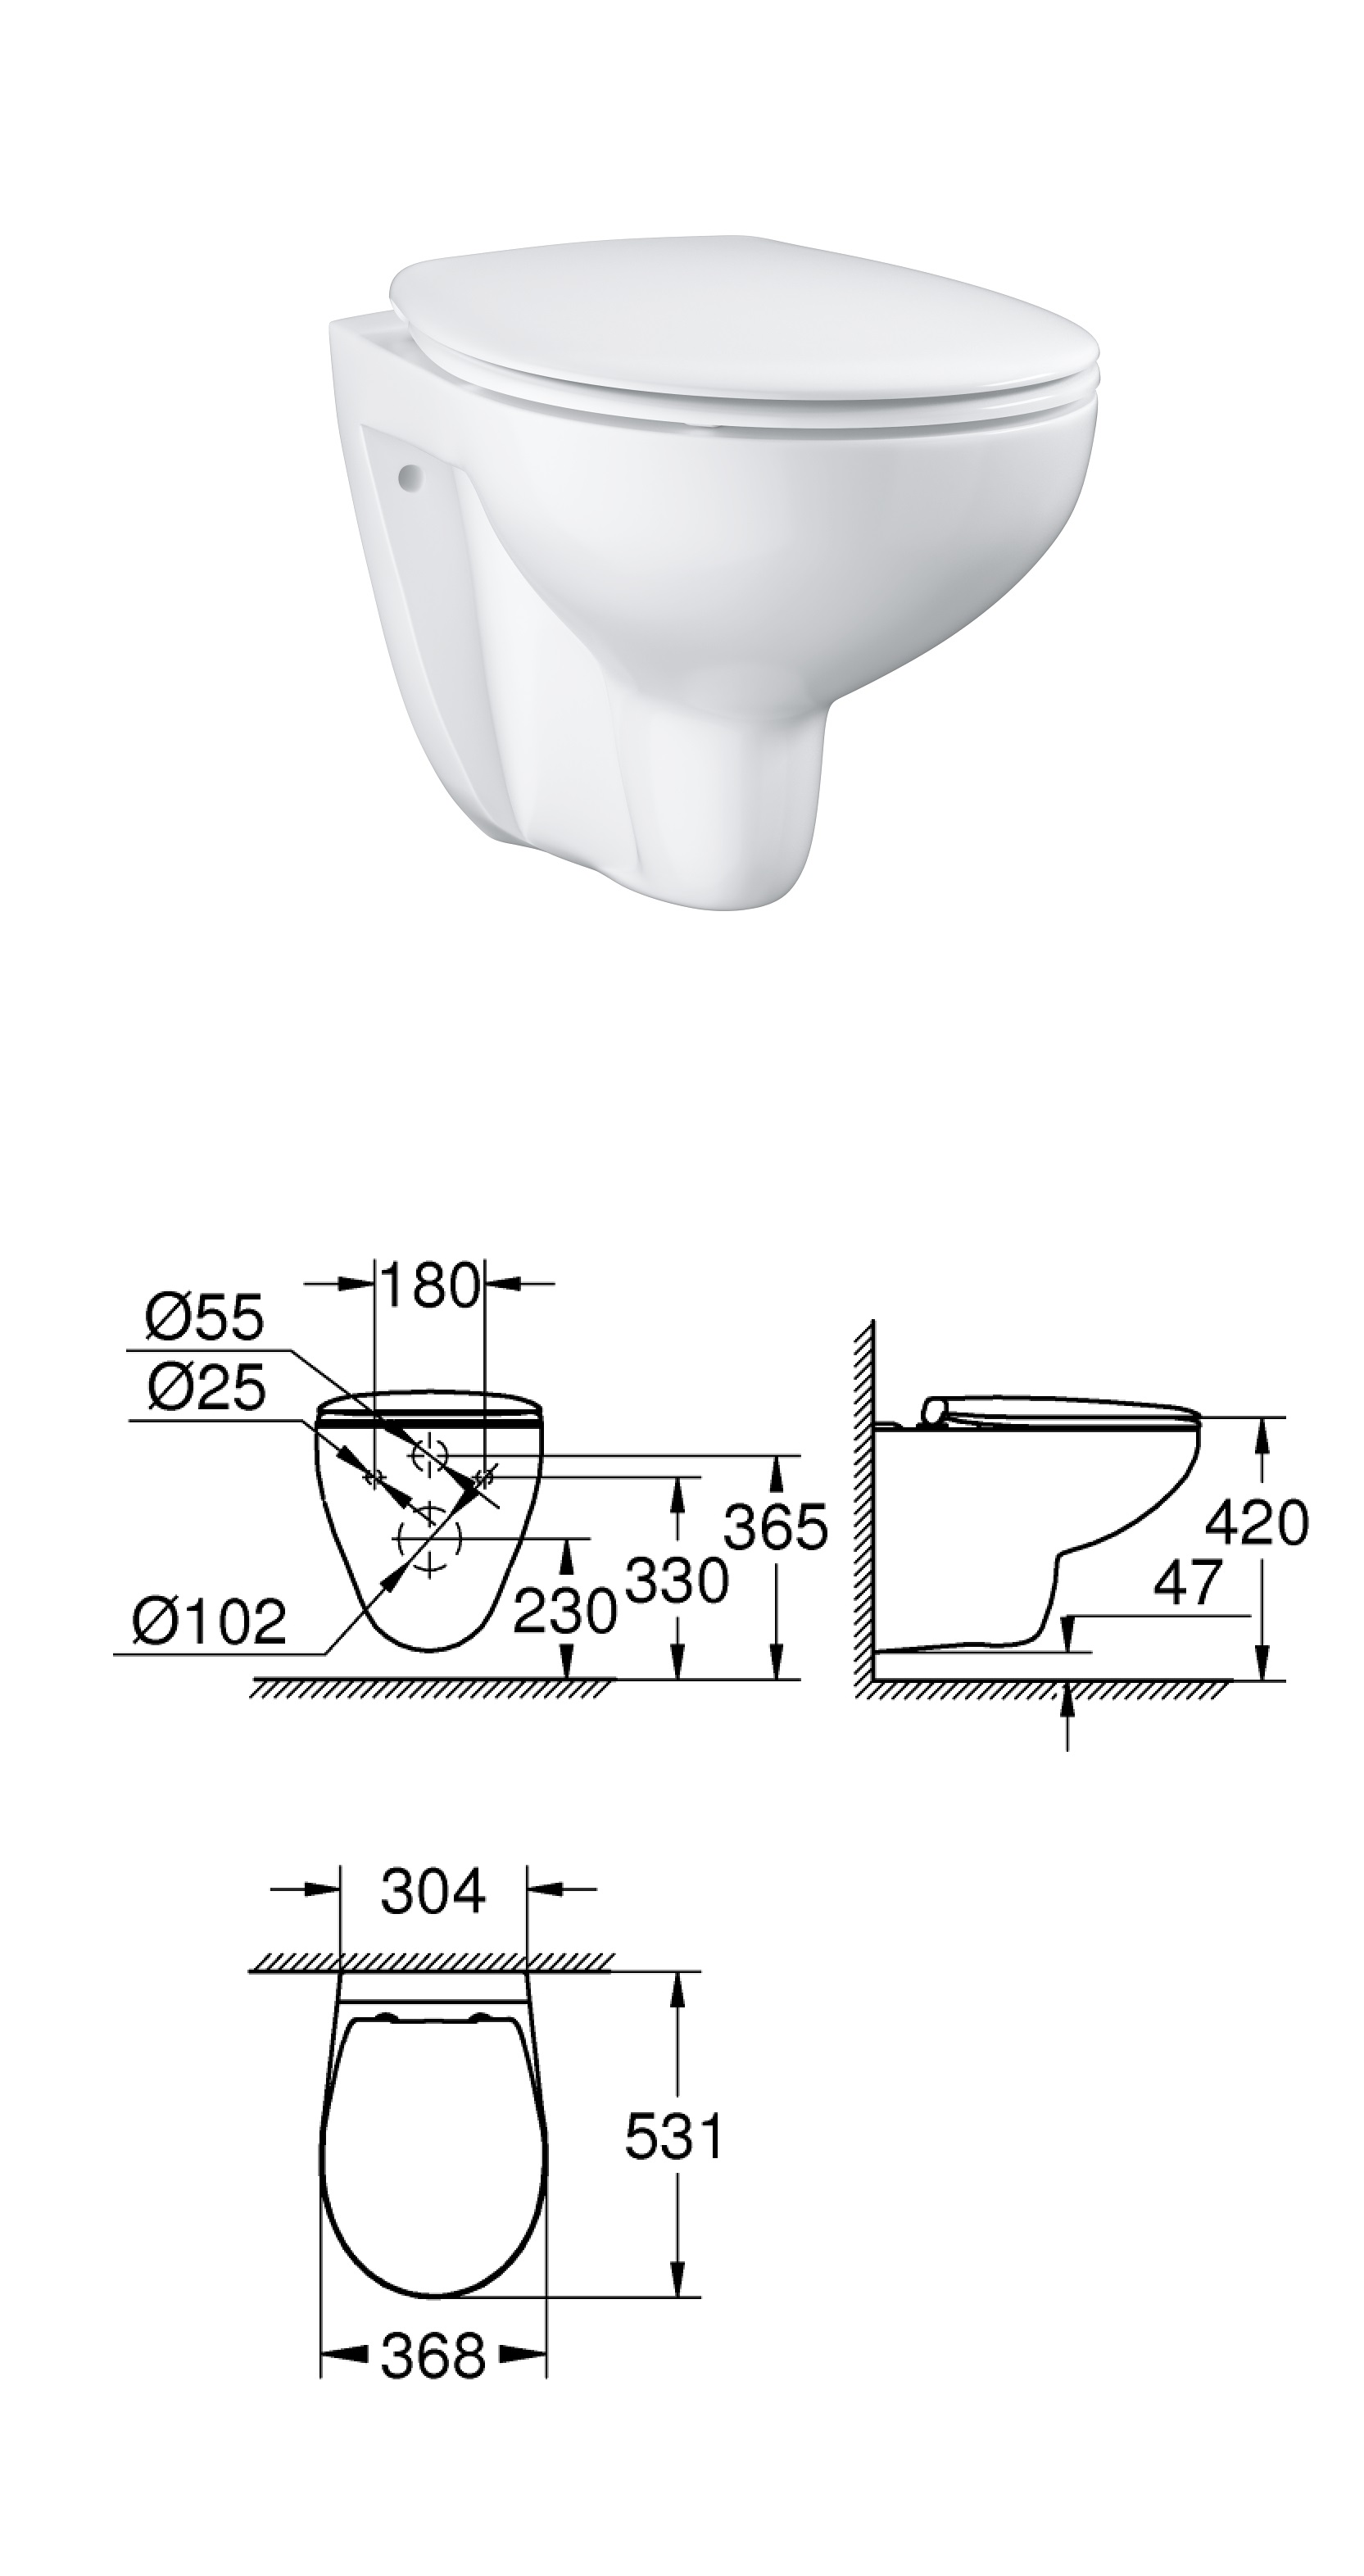 Wc Suspendu Grohe Dimension wc suspendu grohe dimension